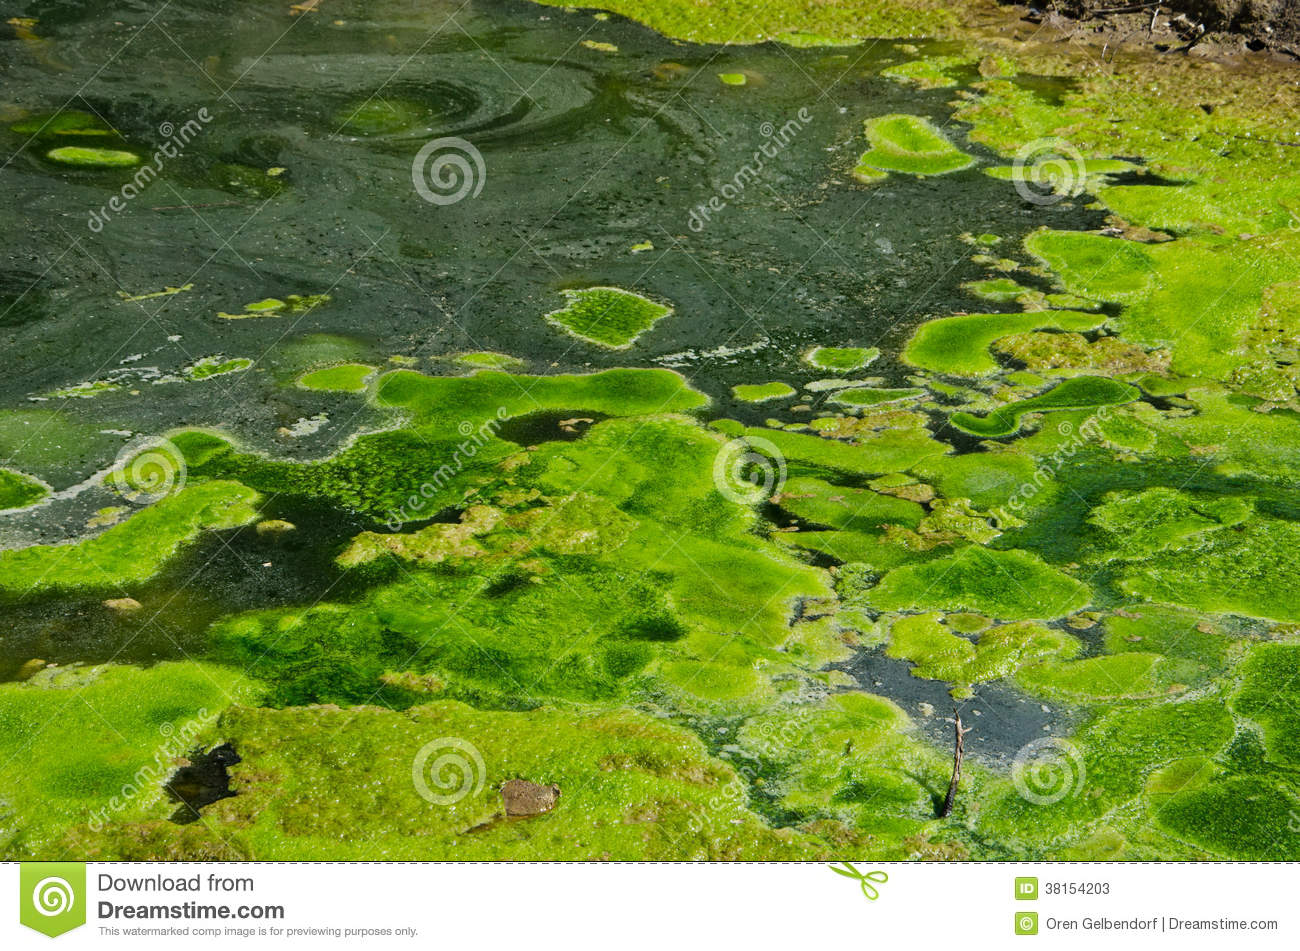 Pond swamp water stock photos image 38154203 for Green pond water